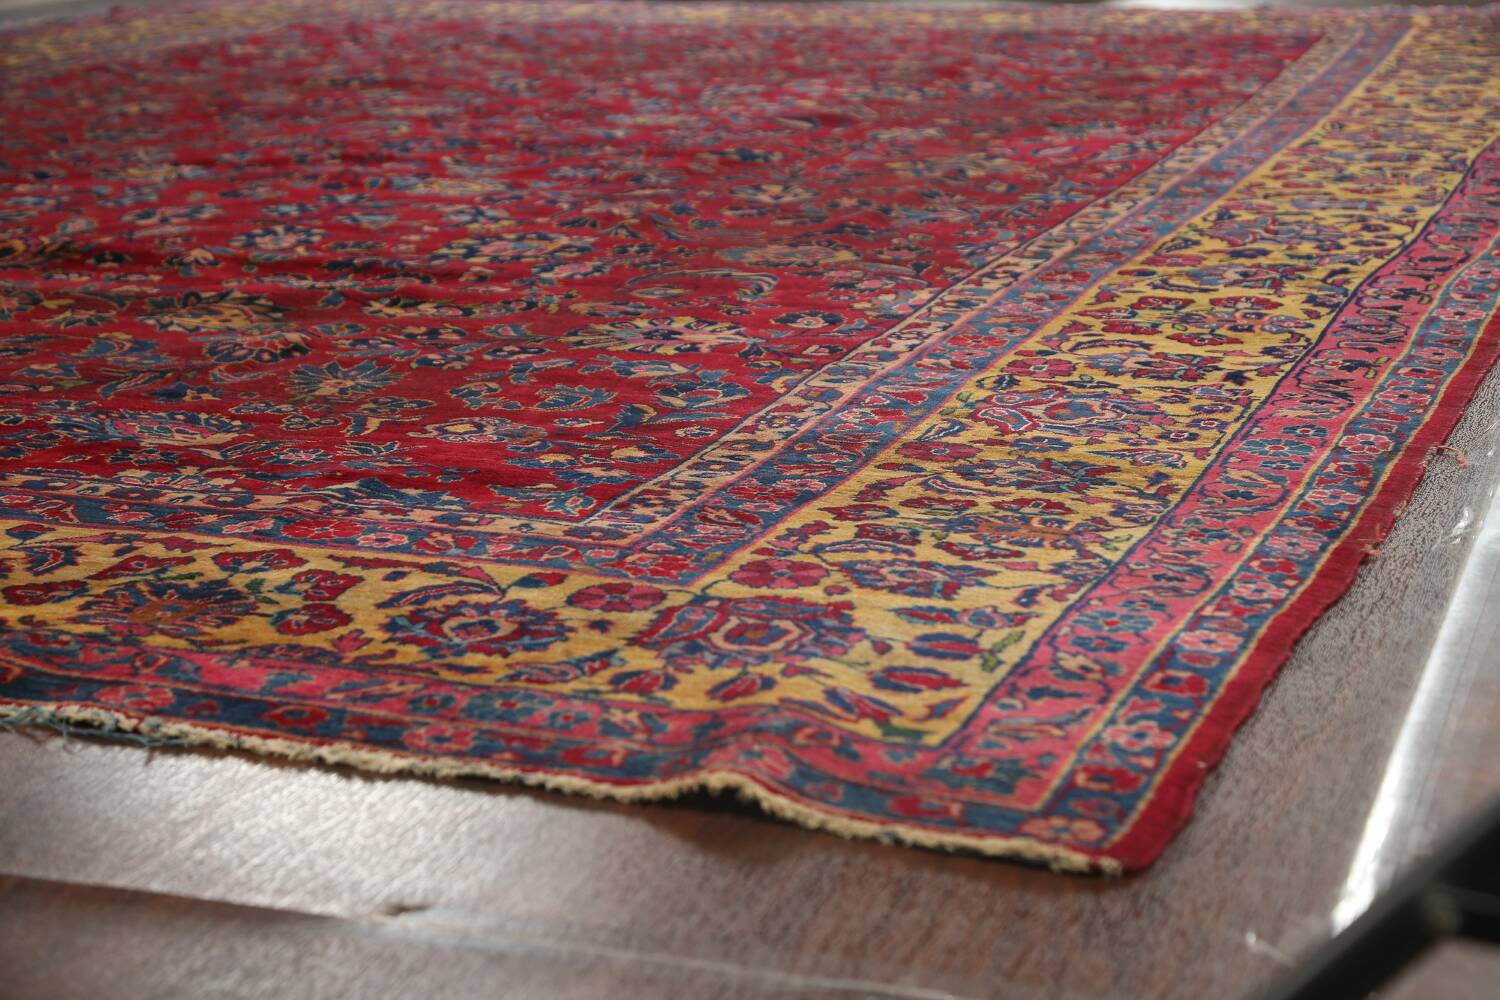 Pre-1900 Antique Vegetable Dye Sarouk Persian Area Rug 11x15 image 6